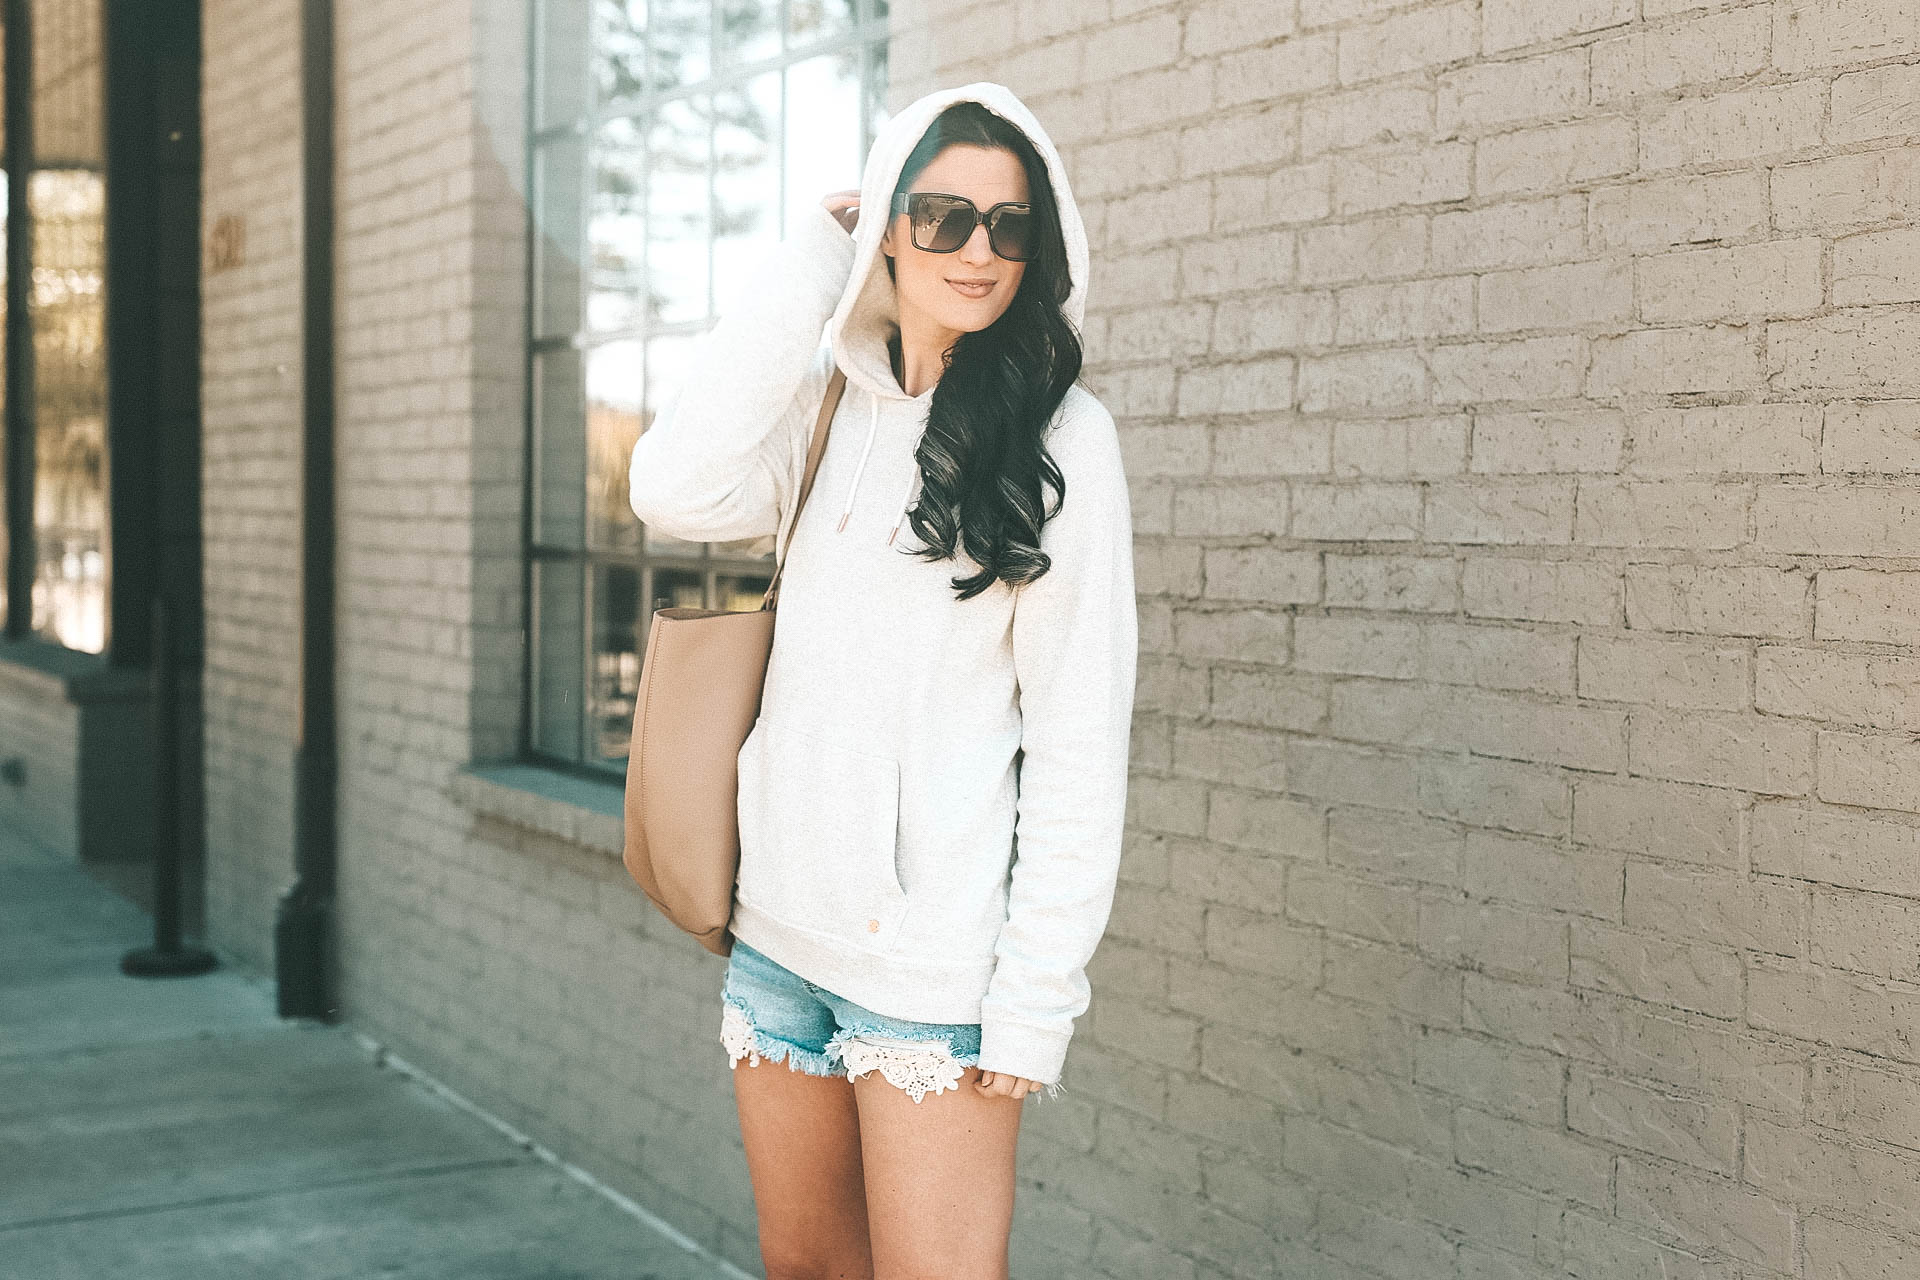 DTKAustin shares how to pull off the athleisure trend for Spring & Summer w/Zappos and Cotton. Hoodie by Volcom, Tote by Gigi New York, Shorts from Target. - Athleisure Trend for Summer w/Cotton & Zappos by popular Austin style blogger Dressed to Kill